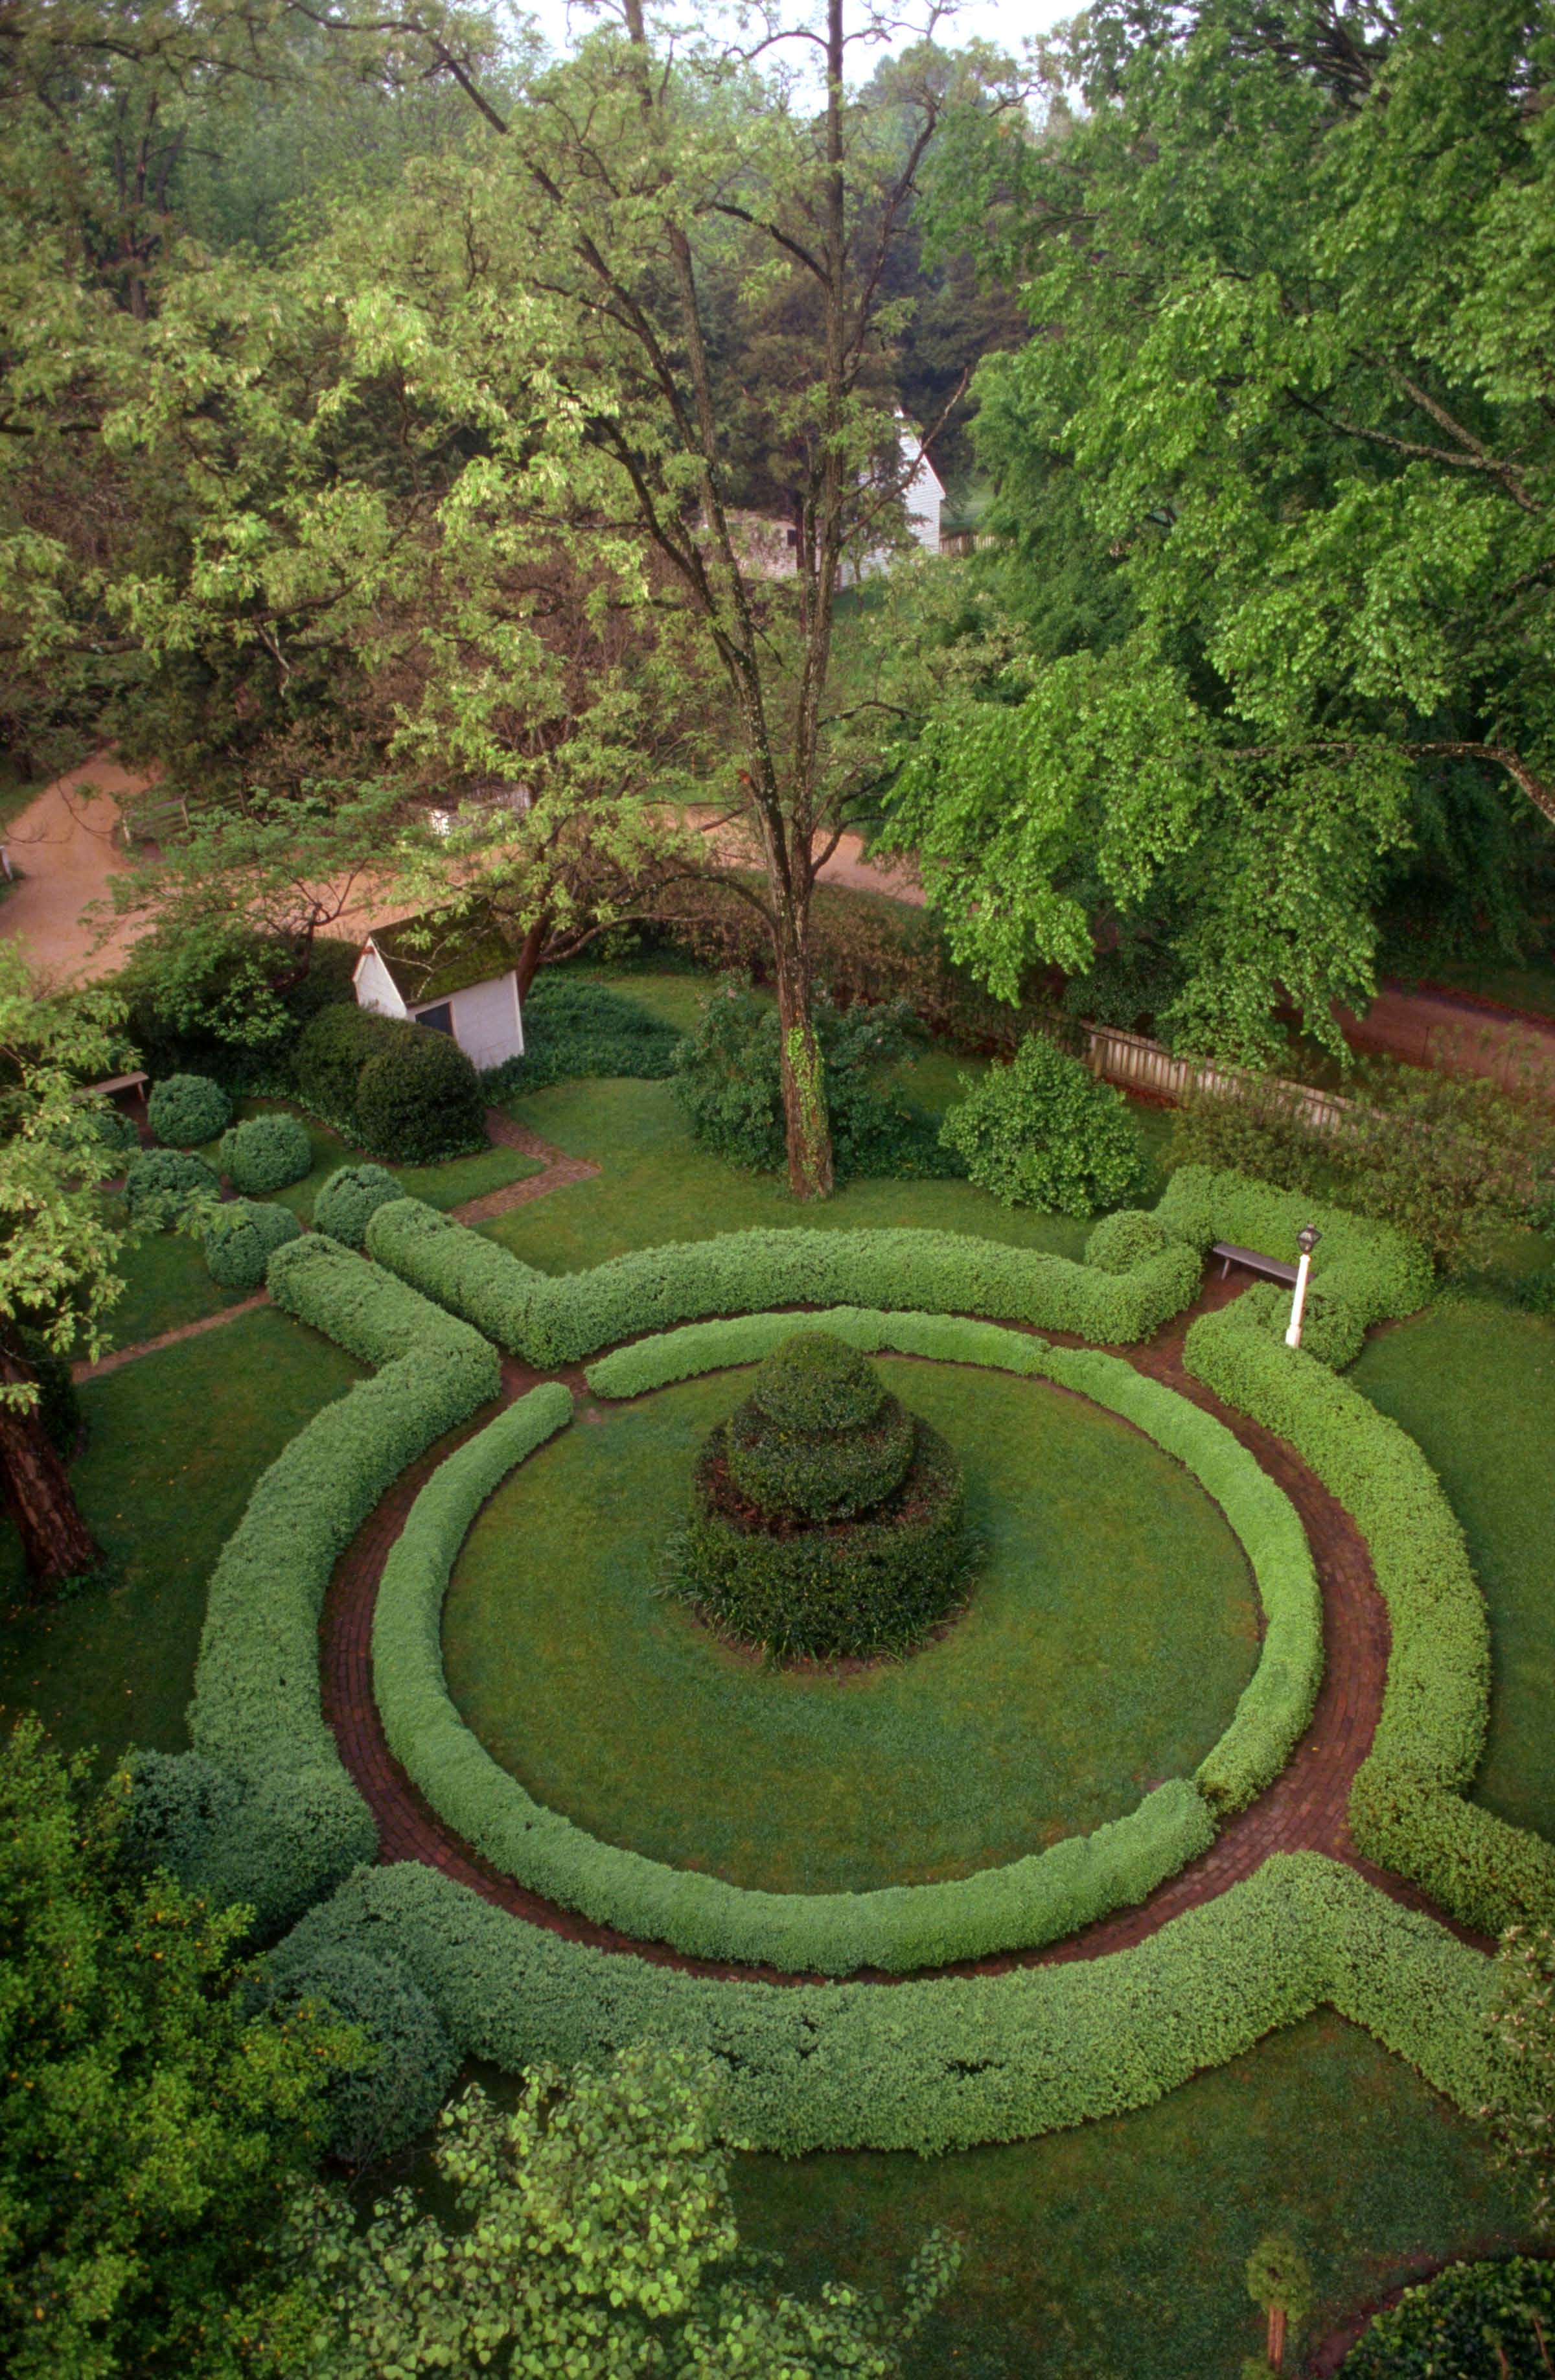 At the center of the Colonial Revival Greenhow-Repiton garden, a spiral topiary centers a circle around which lawns and beds radiate.